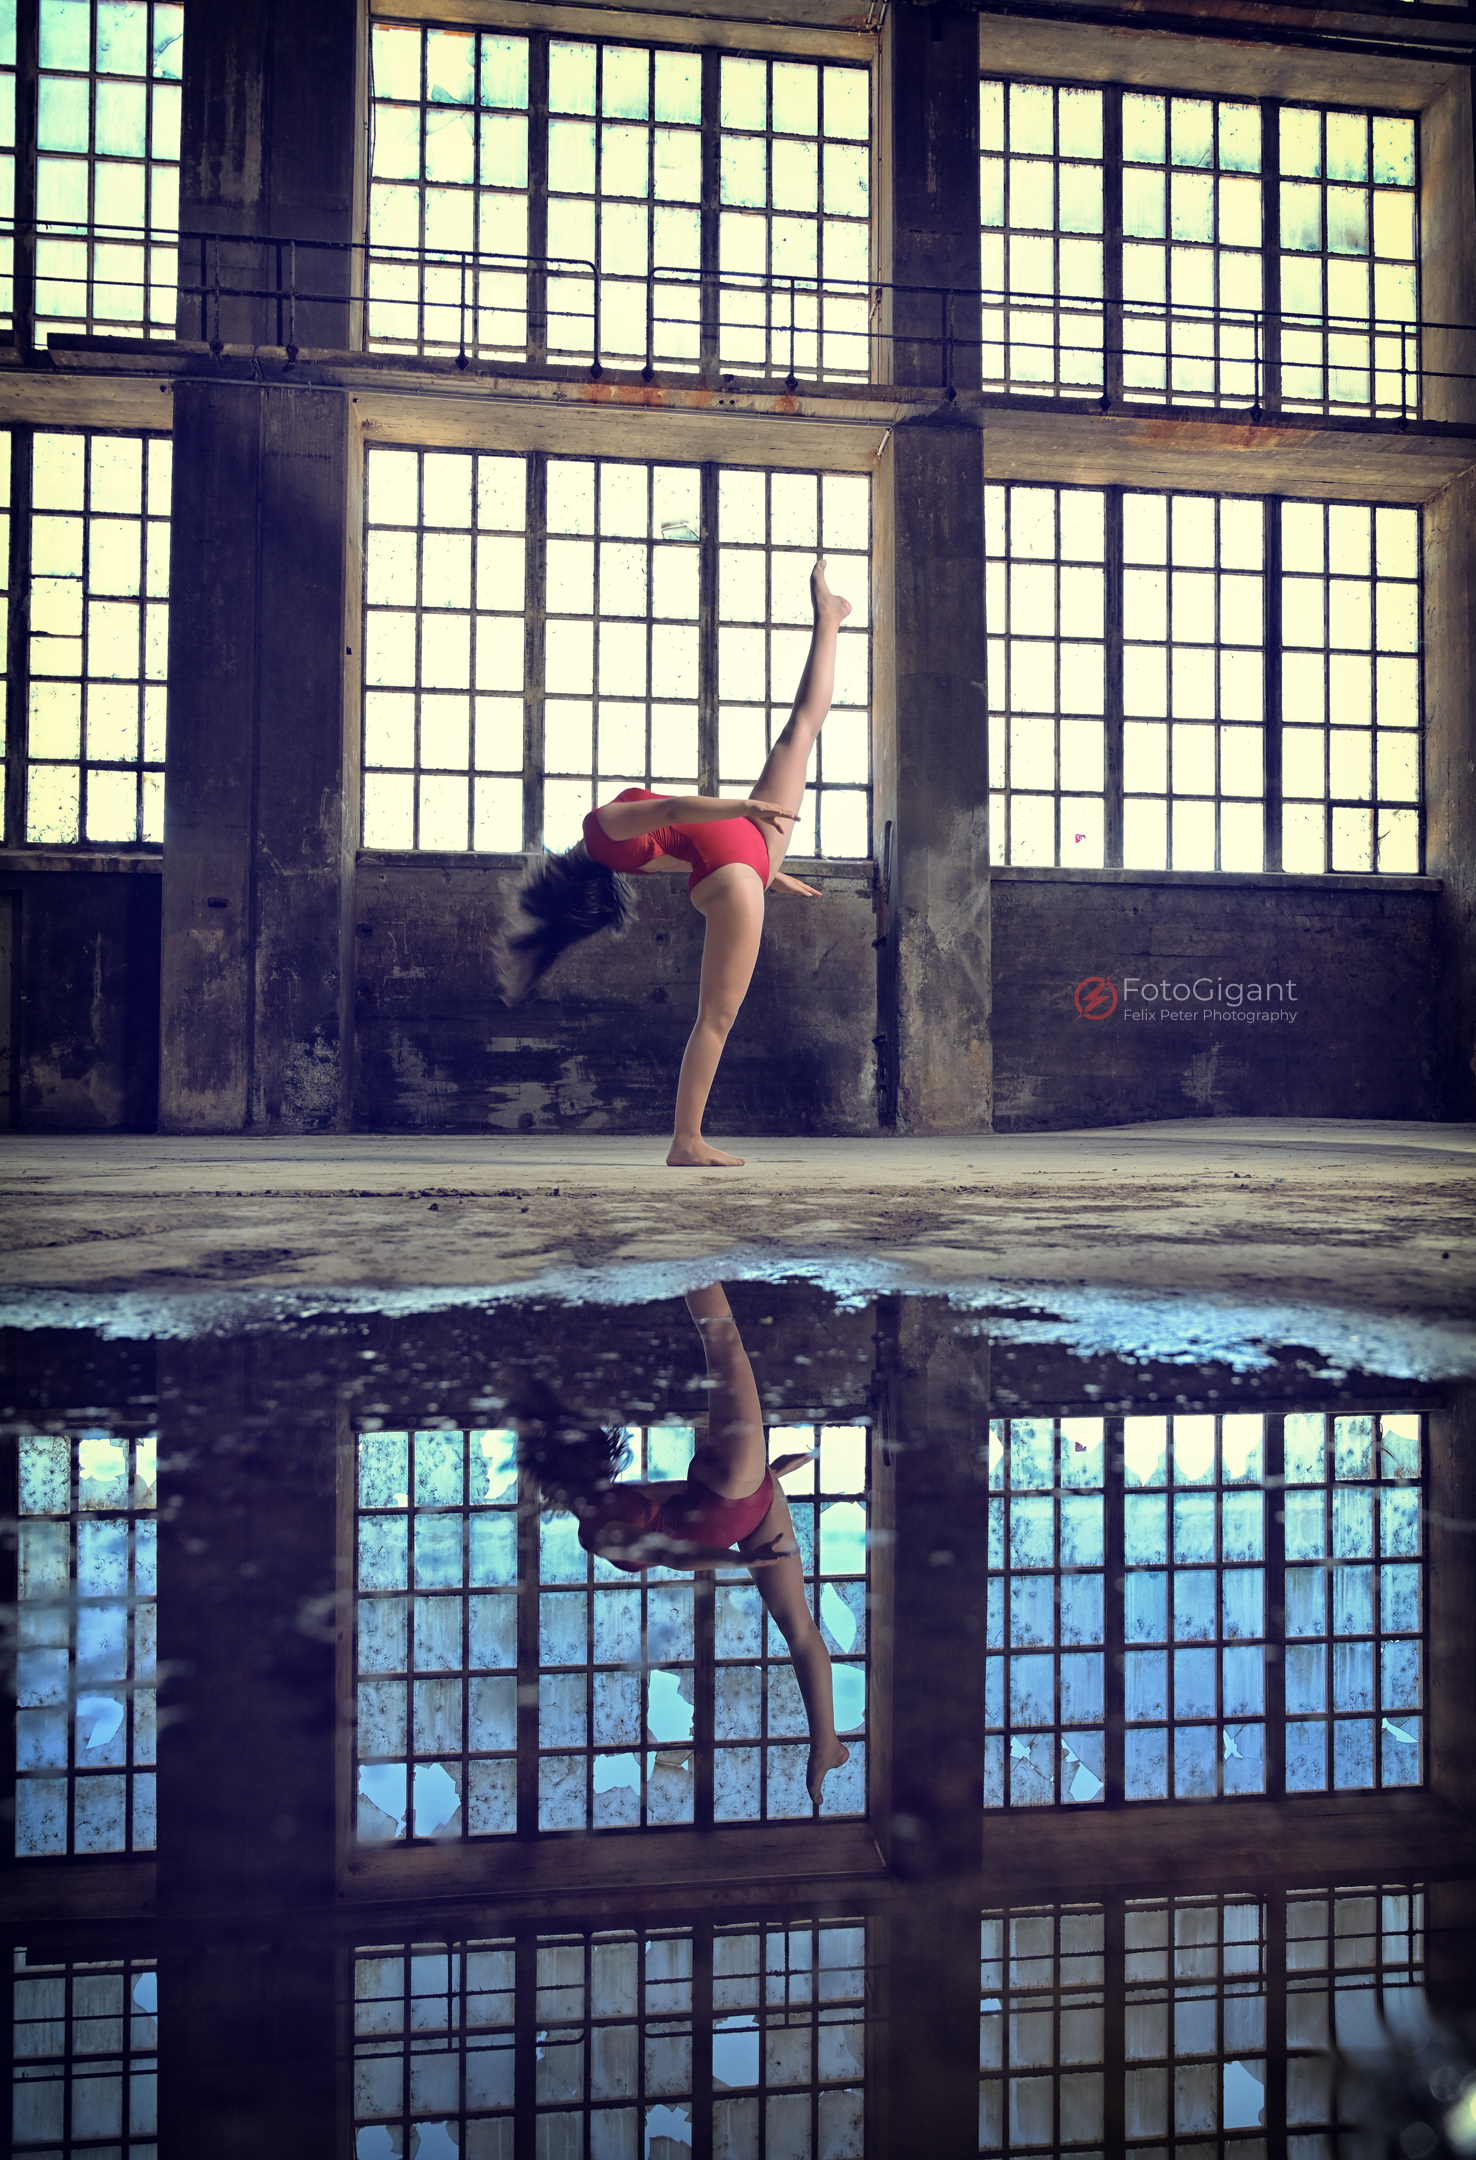 Balletdancer_in_Lostplace_18.jpg